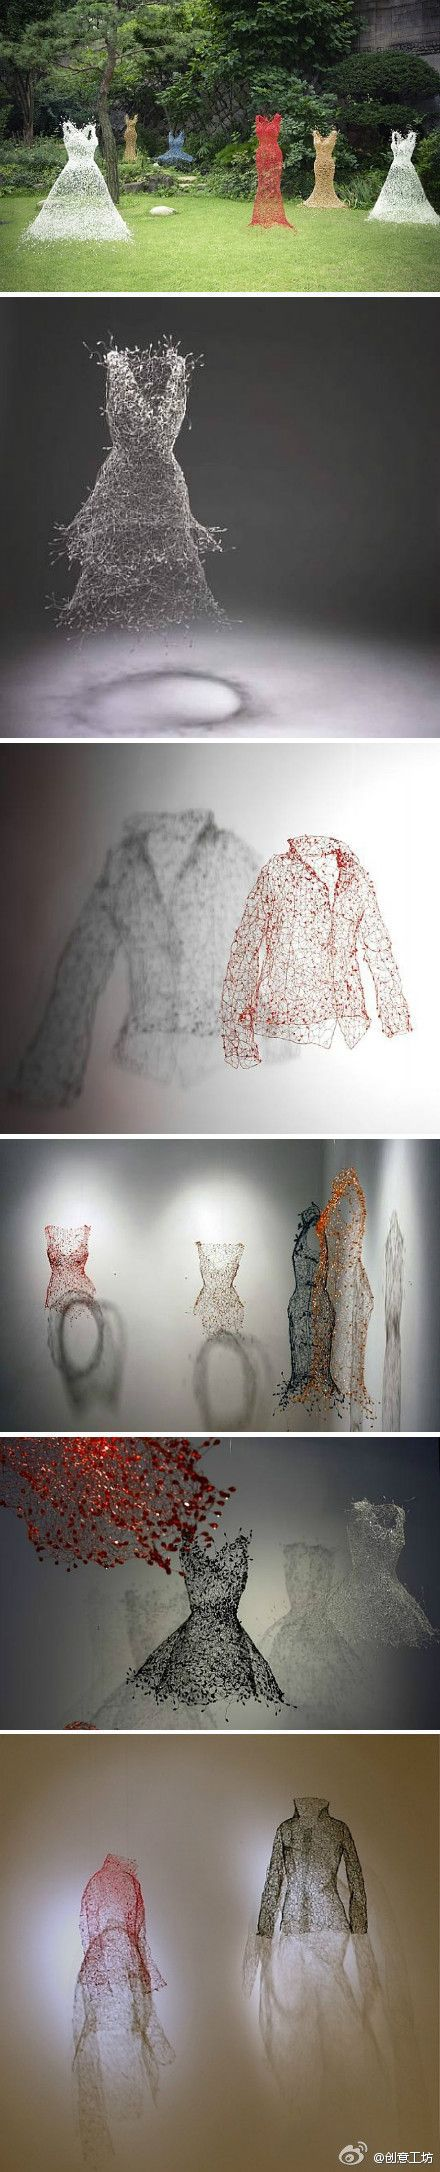 [Clothes of life] South Korean artist Keysook Geum just completed with wire vivid and light evening sculpture series. Bubble general suspension. The master of the invisible clothes, but these clothes seemed to be alive.